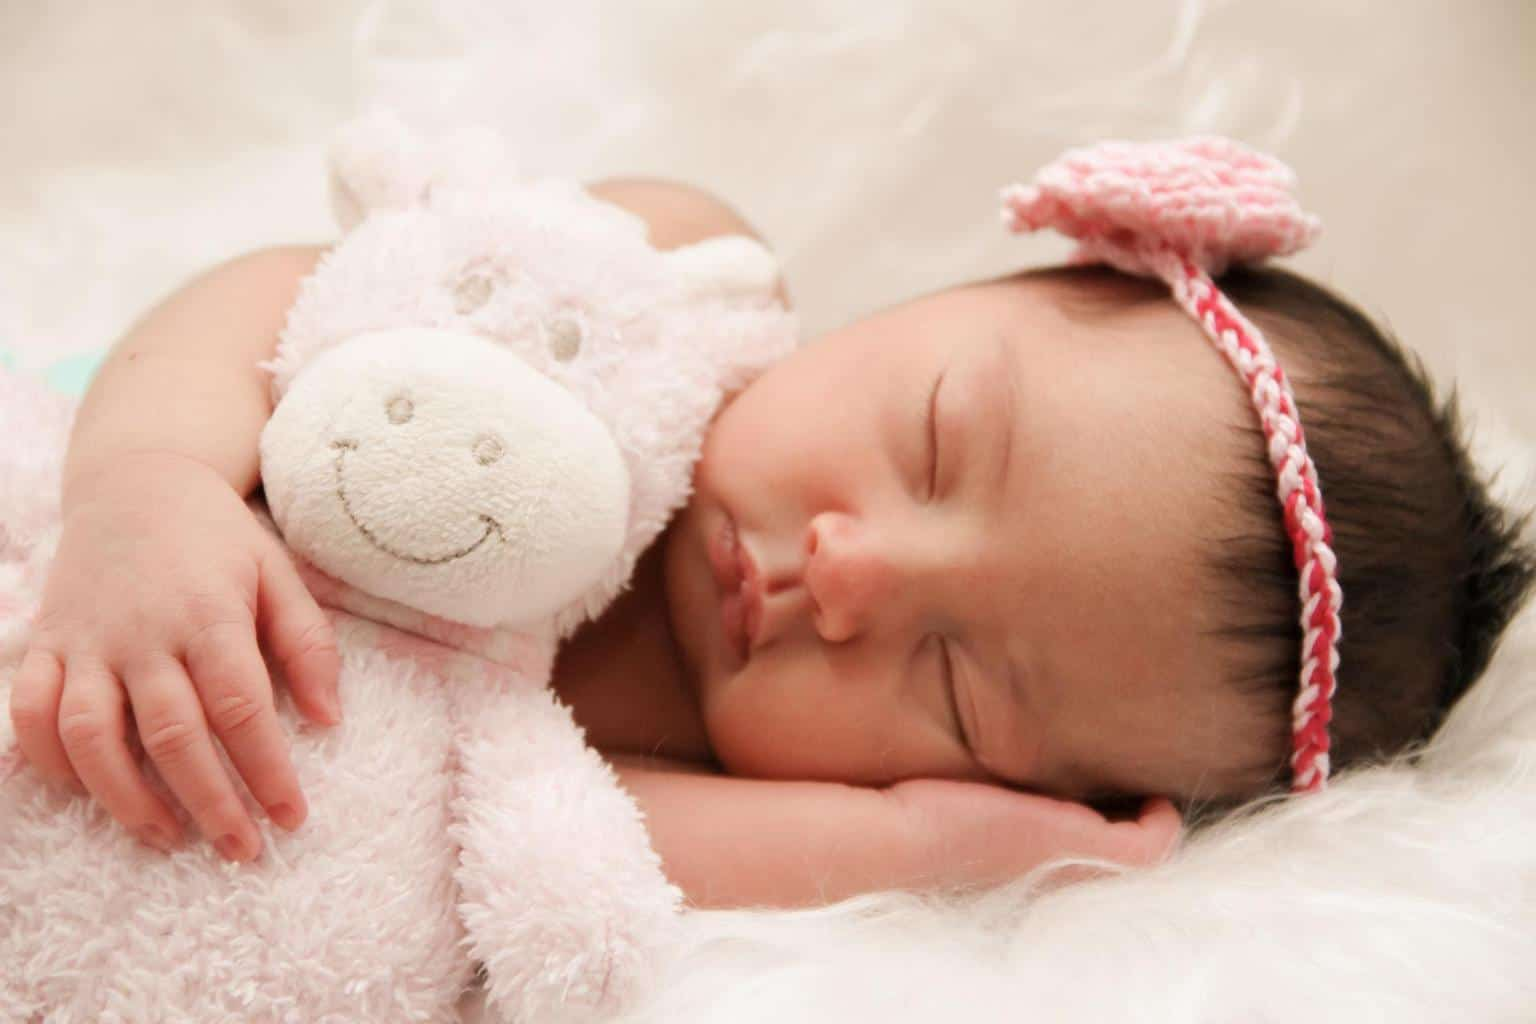 Sleep training helps babies learn to self-soothe and sleep. -When to Start Sleep Training Baby & What to Expect From It | Baby Journey